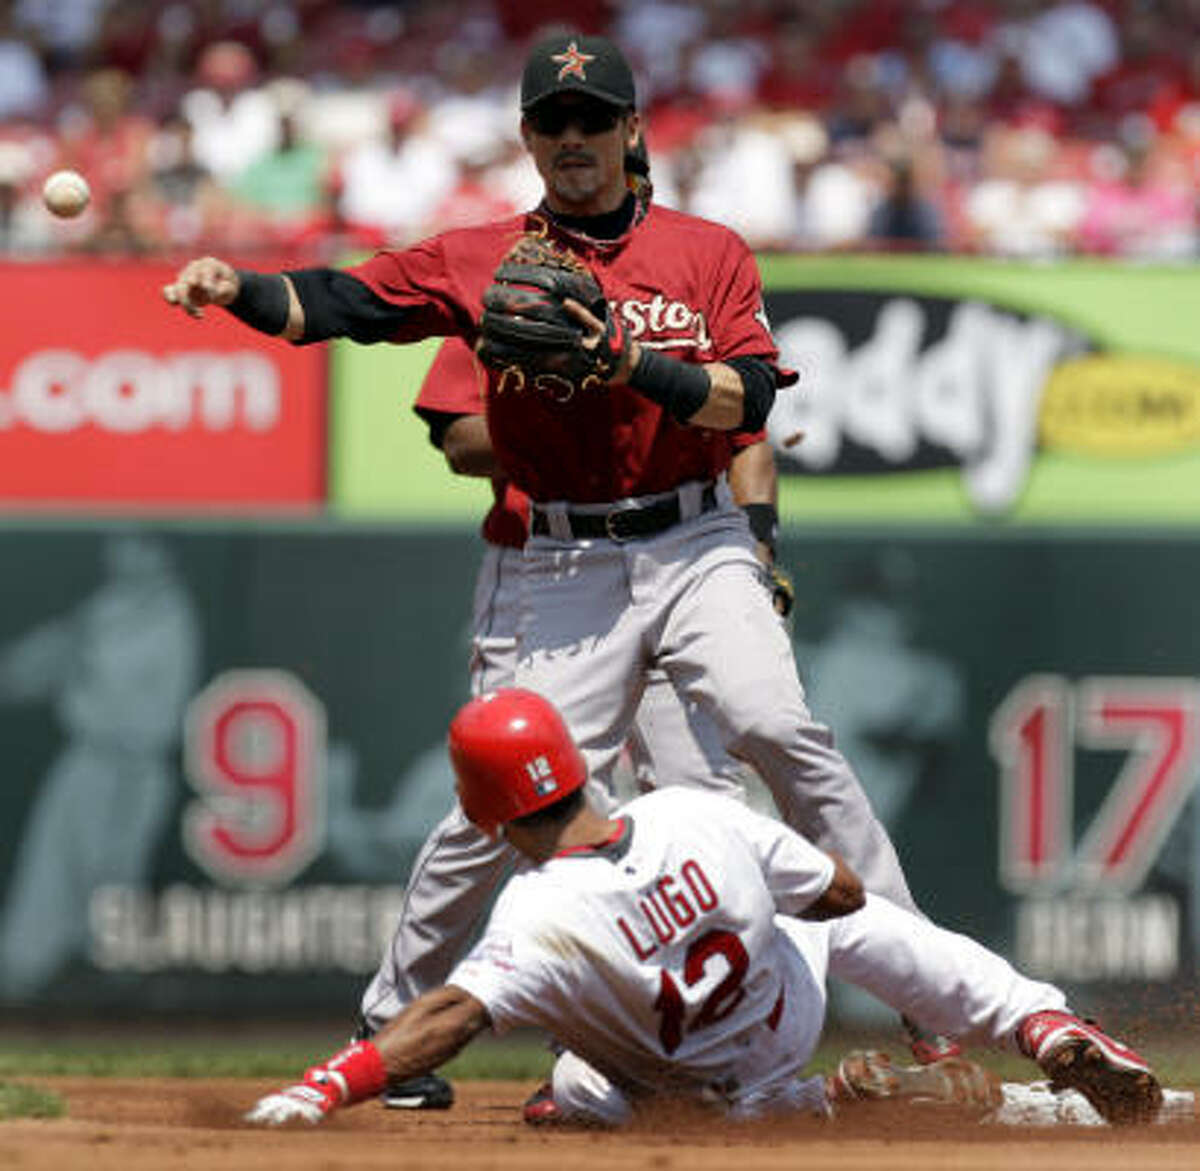 St. Louis' Julio Lugo, bottom, is out at second as Astros second baseman Kazuo Matsui throws to first to complete a double play on Albert Pujols at first during the first inning.